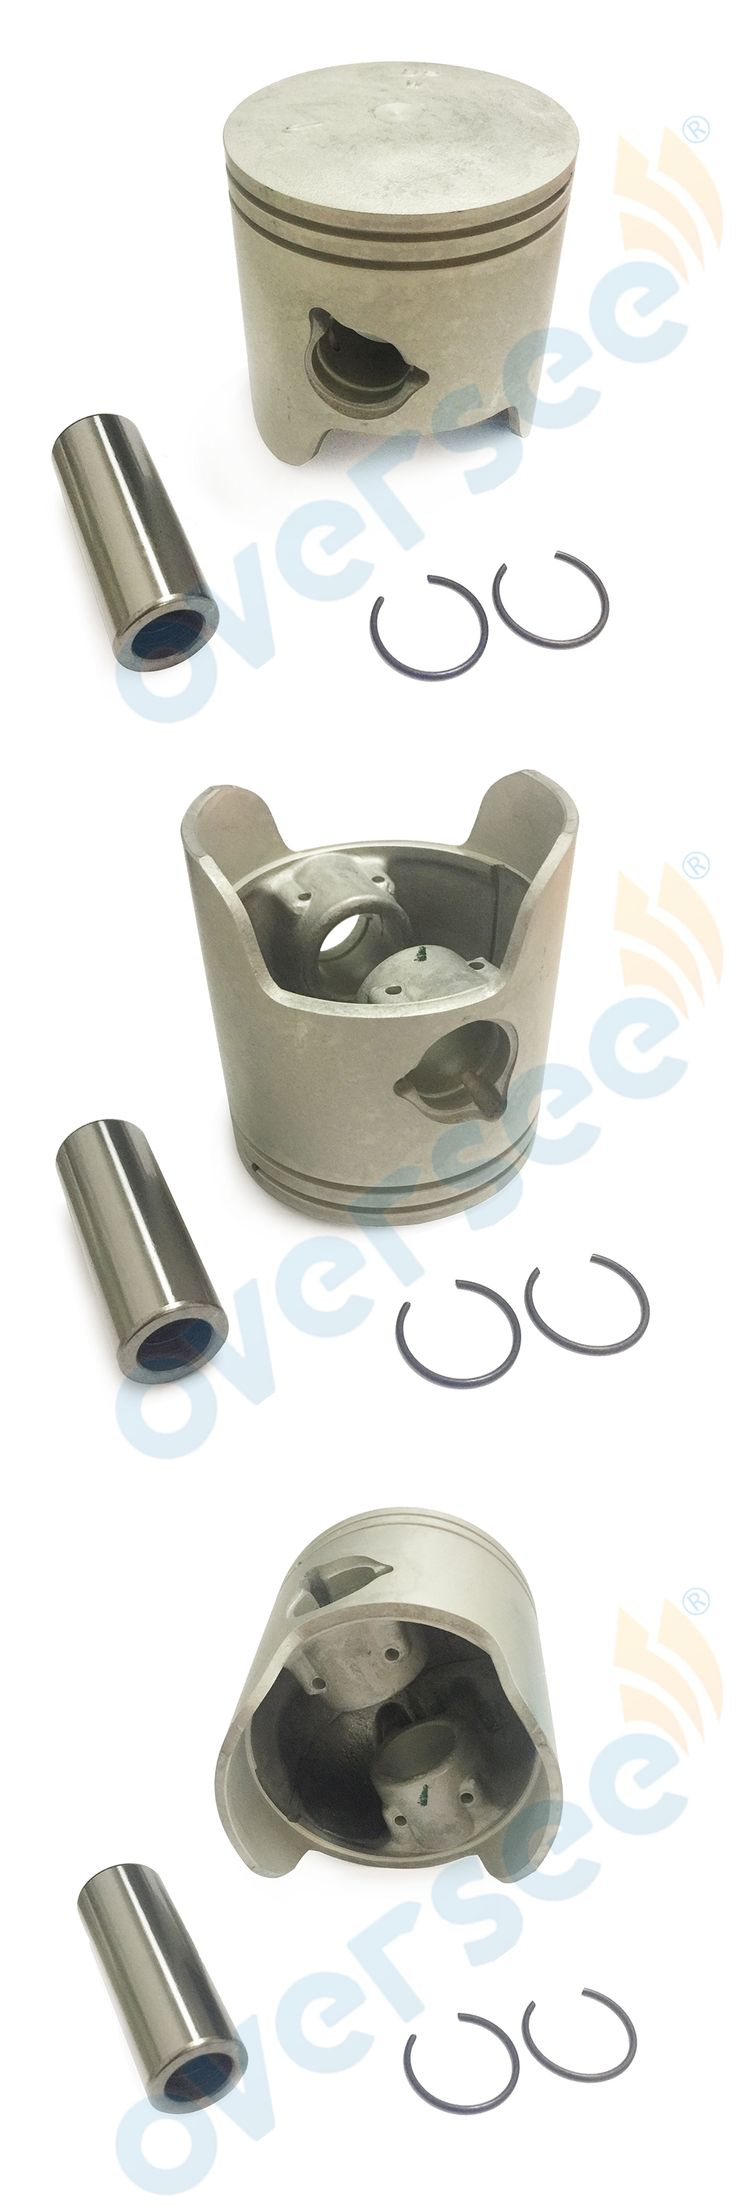 Pro Piston Kit w/Riken Rings Replaces OEM 6H3-11636-01 6H3-11636